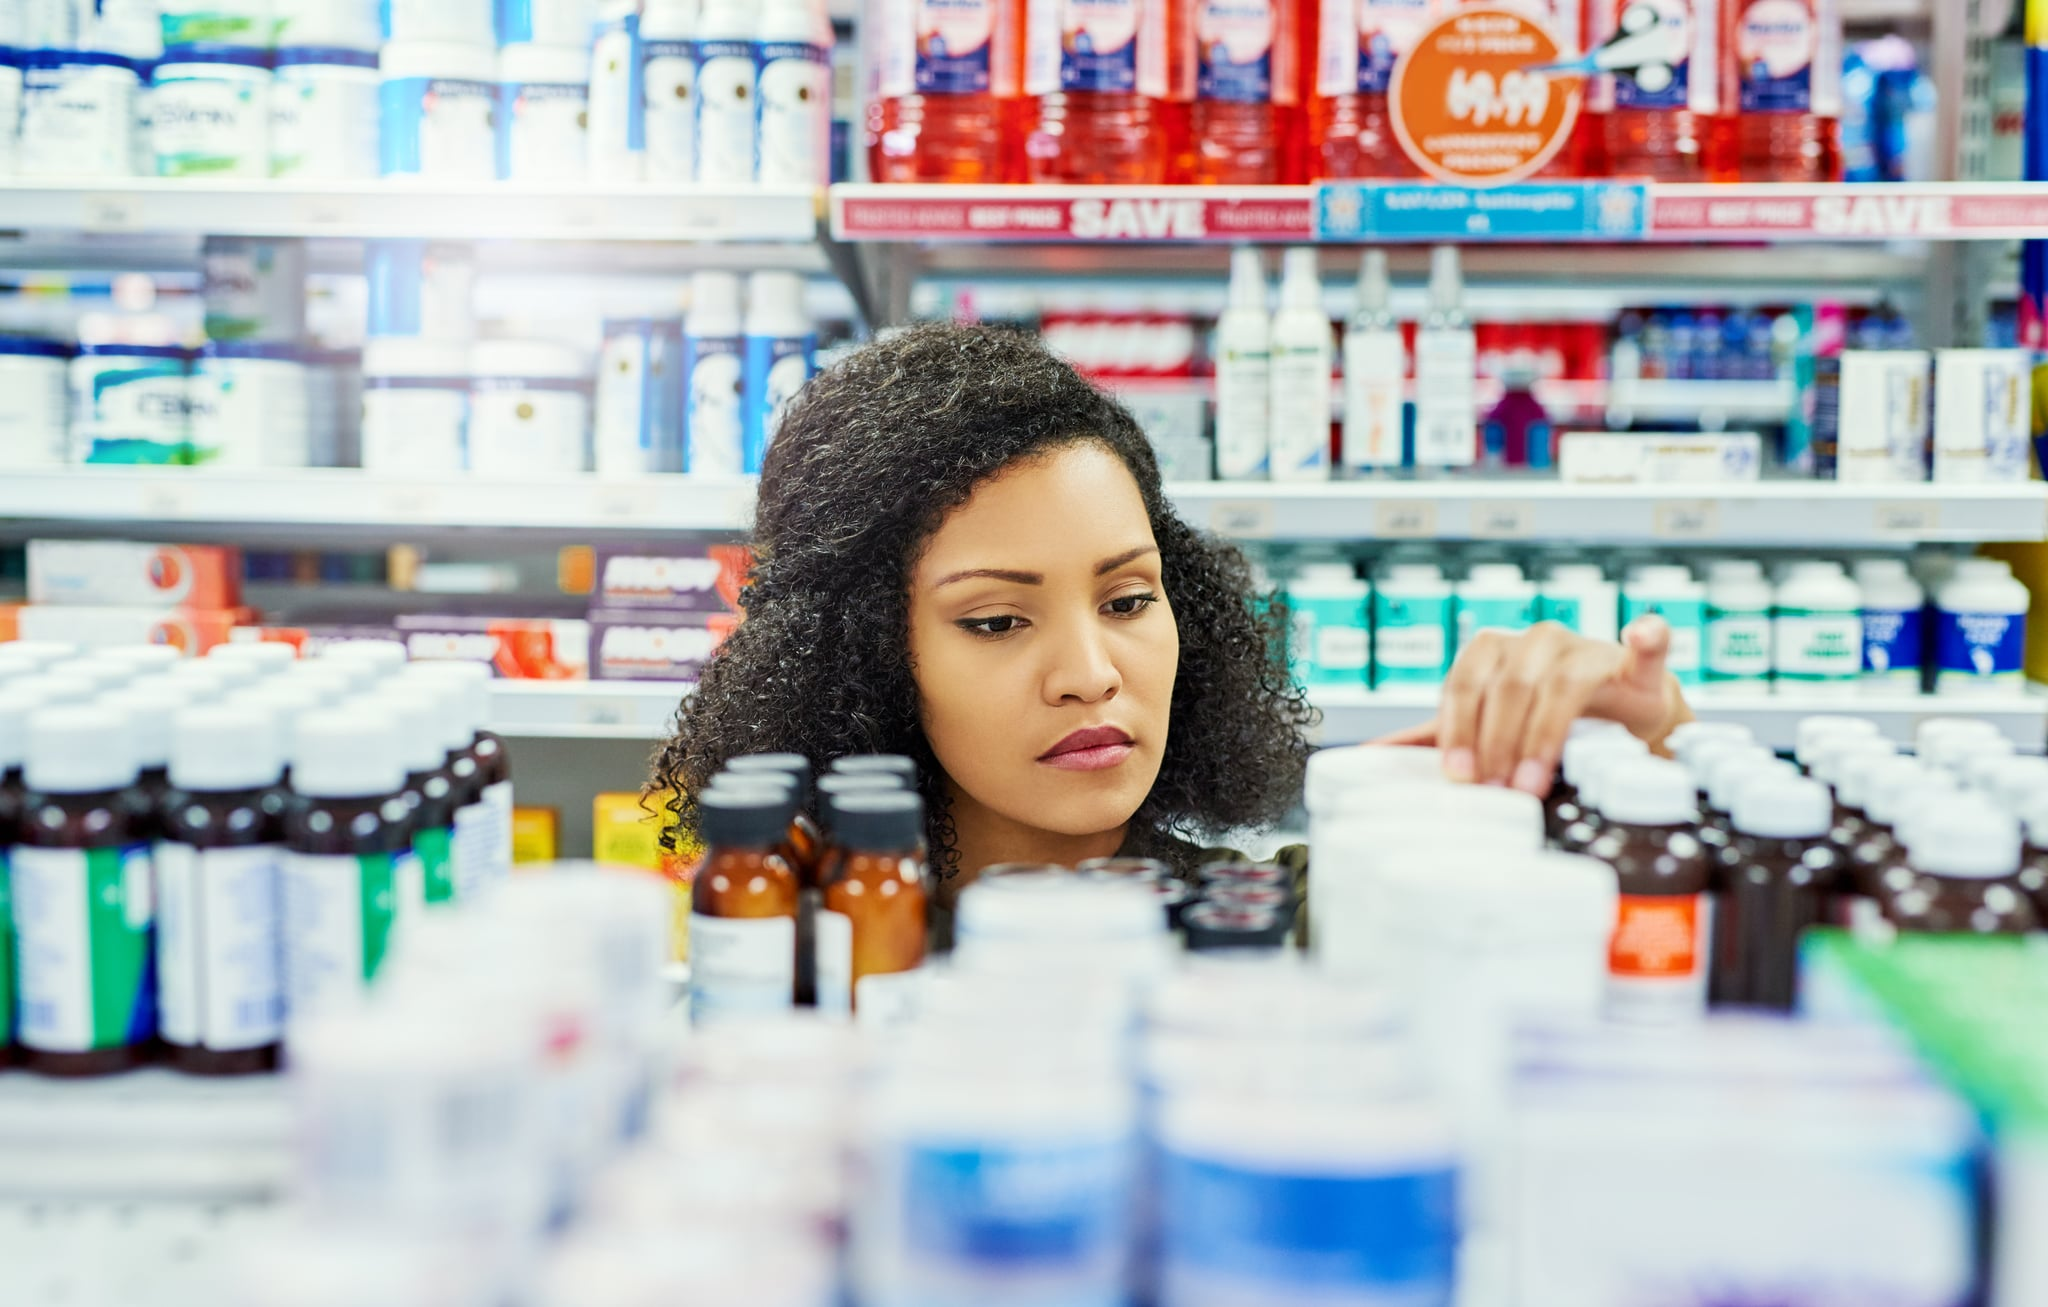 Cropped shot of a female customer in a pharmacy